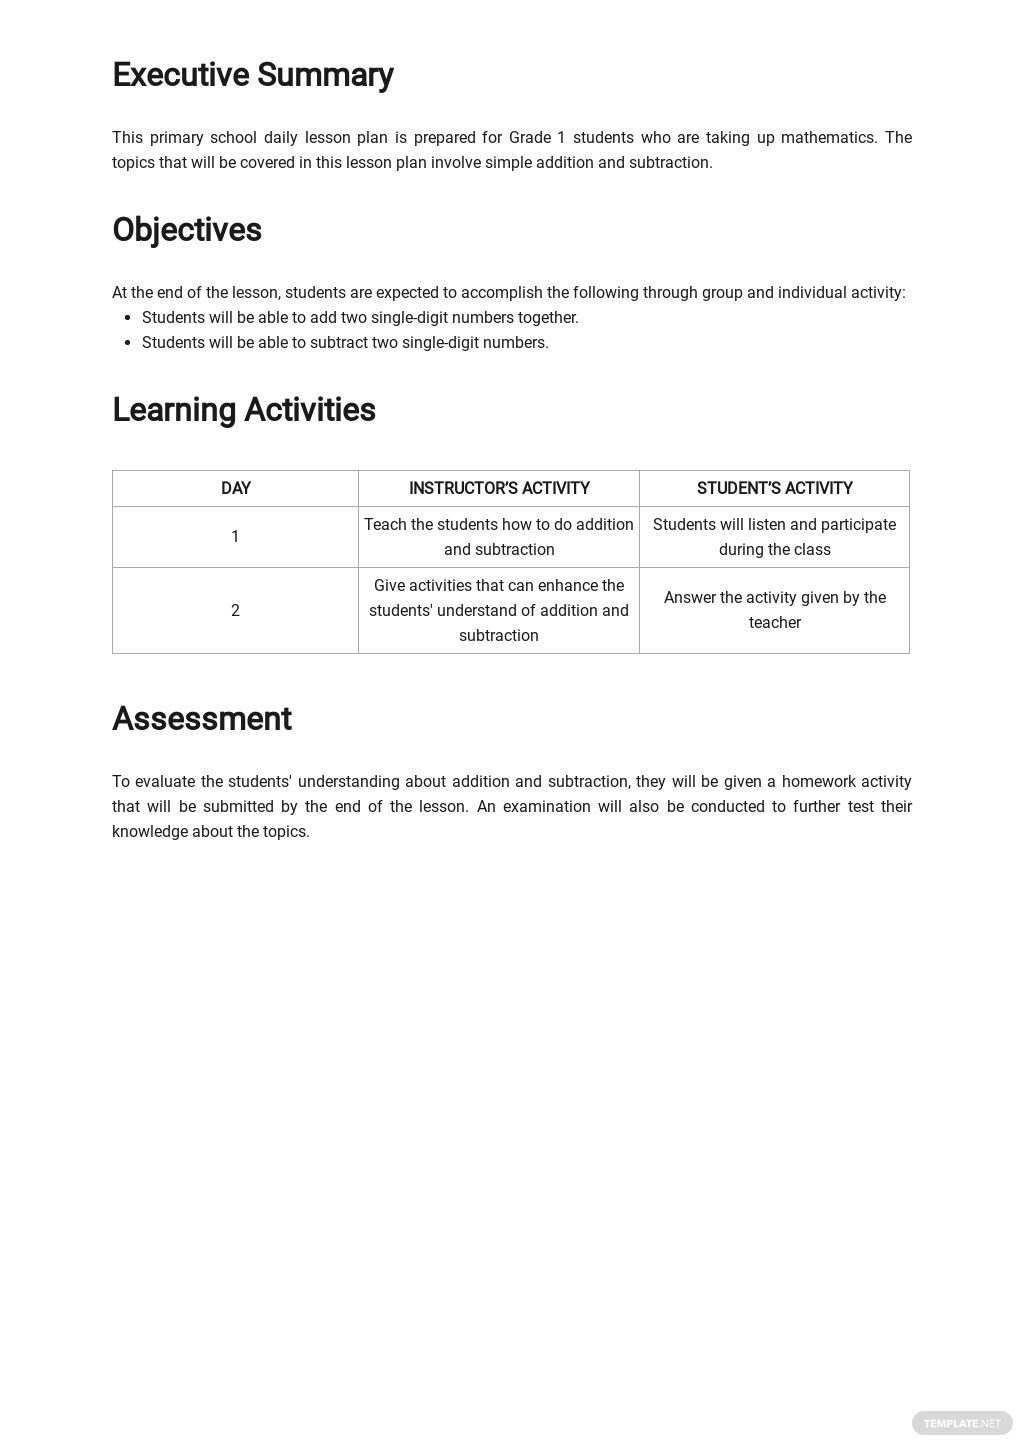 Primary School Daily Lesson Plan Template 1.jpe